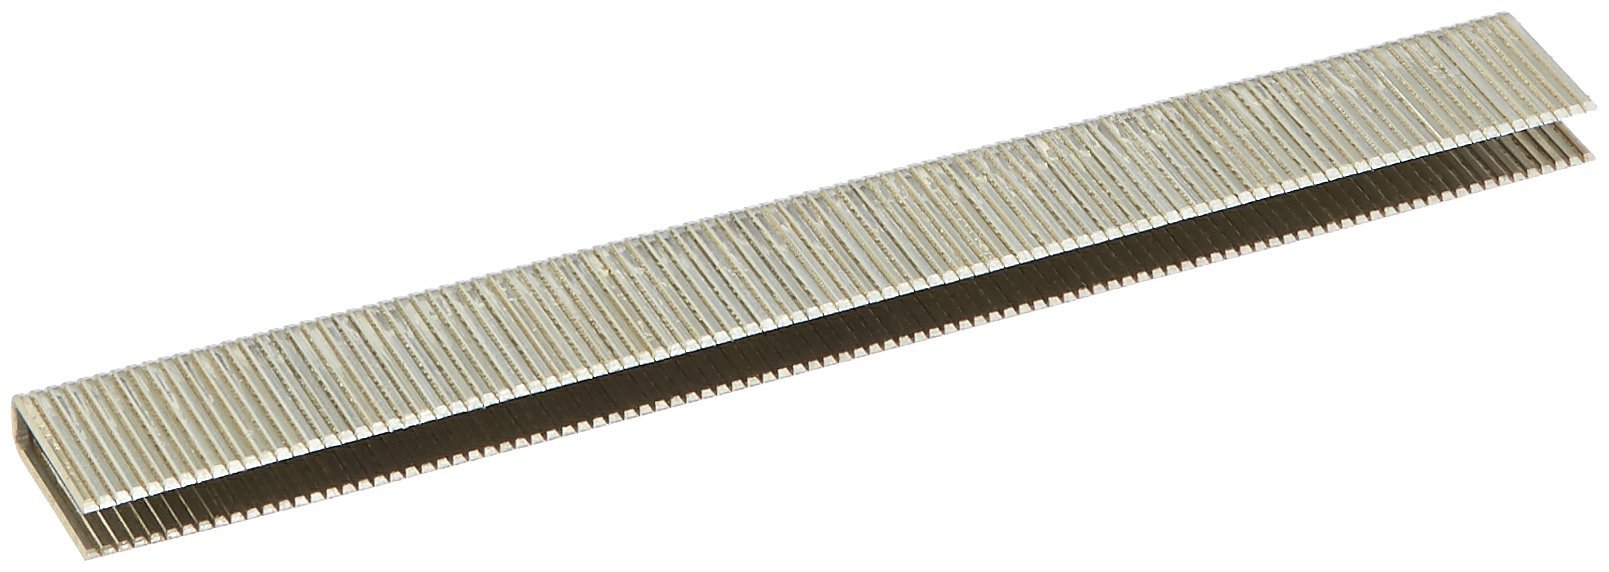 PORTER-CABLE PNS18063 5/8-Inch, 18 Gauge Narrow Crown (1/4-Inch) Staple (5000-Pack)